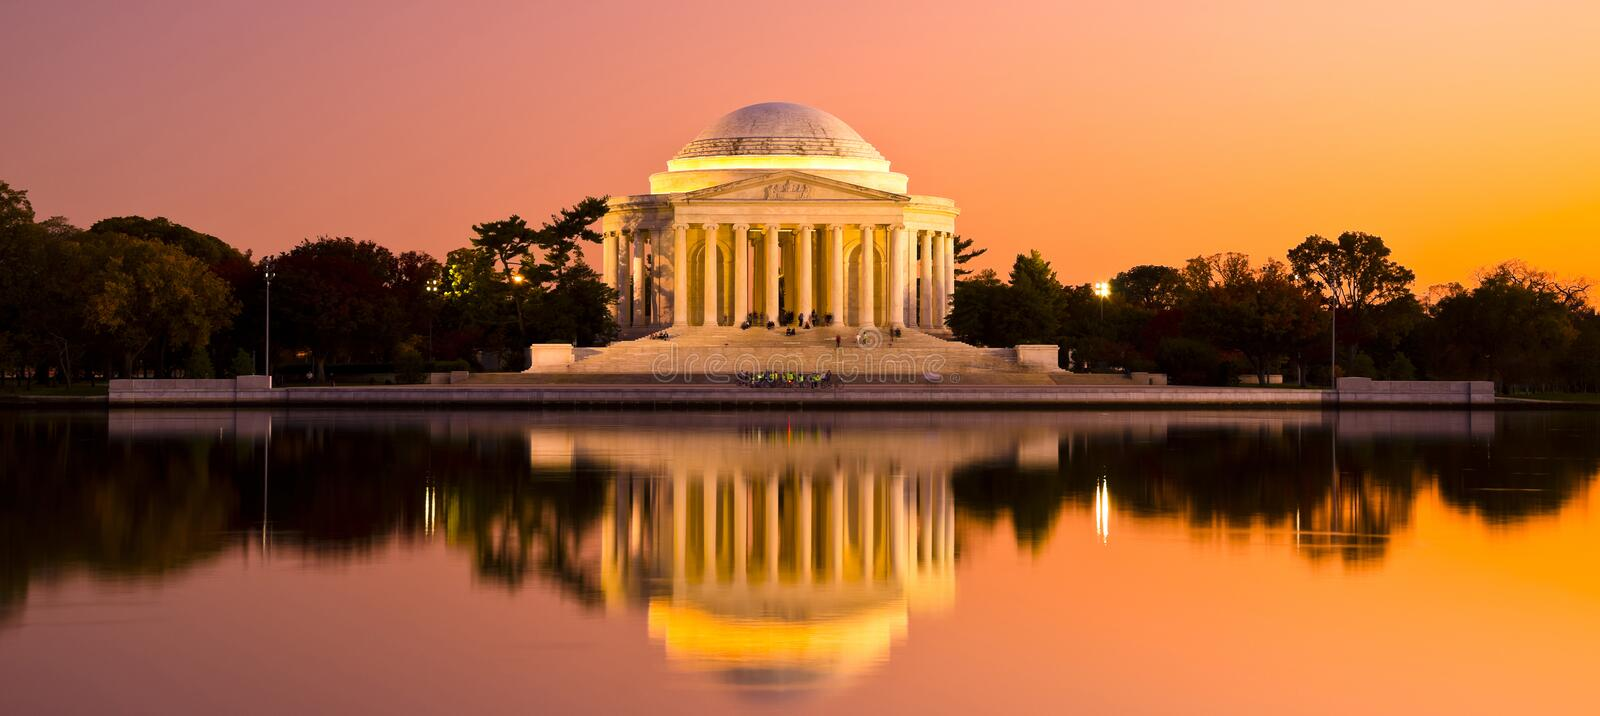 Thomas Jefferson Memorial no Washington DC, EUA foto de stock